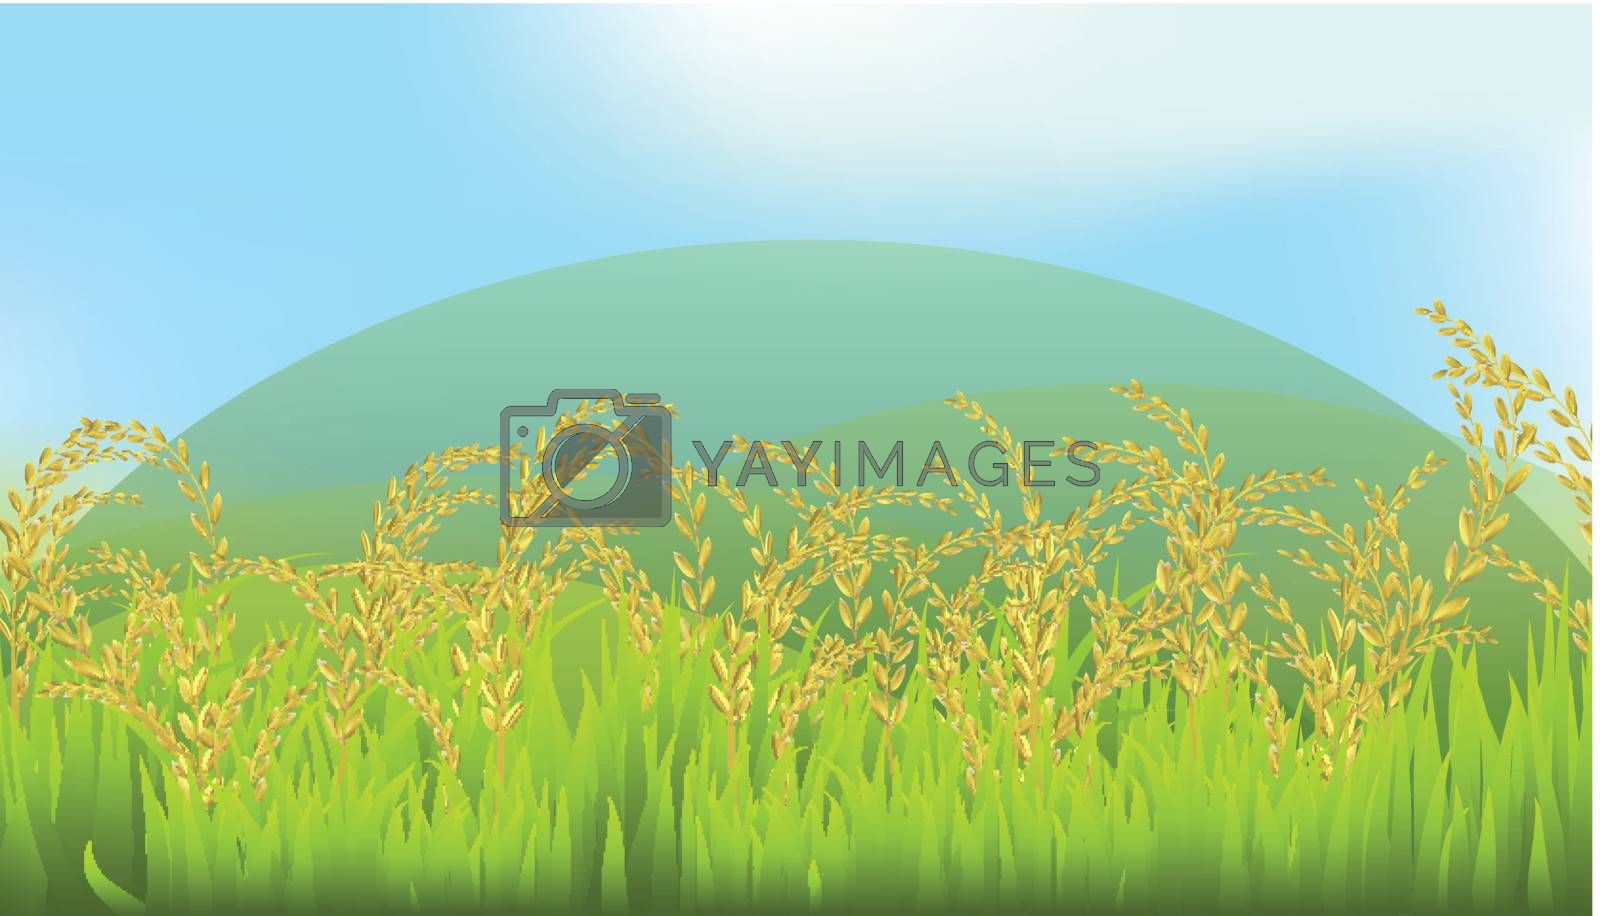 Thai White rice  fields illustration  mountains and the sky in the background